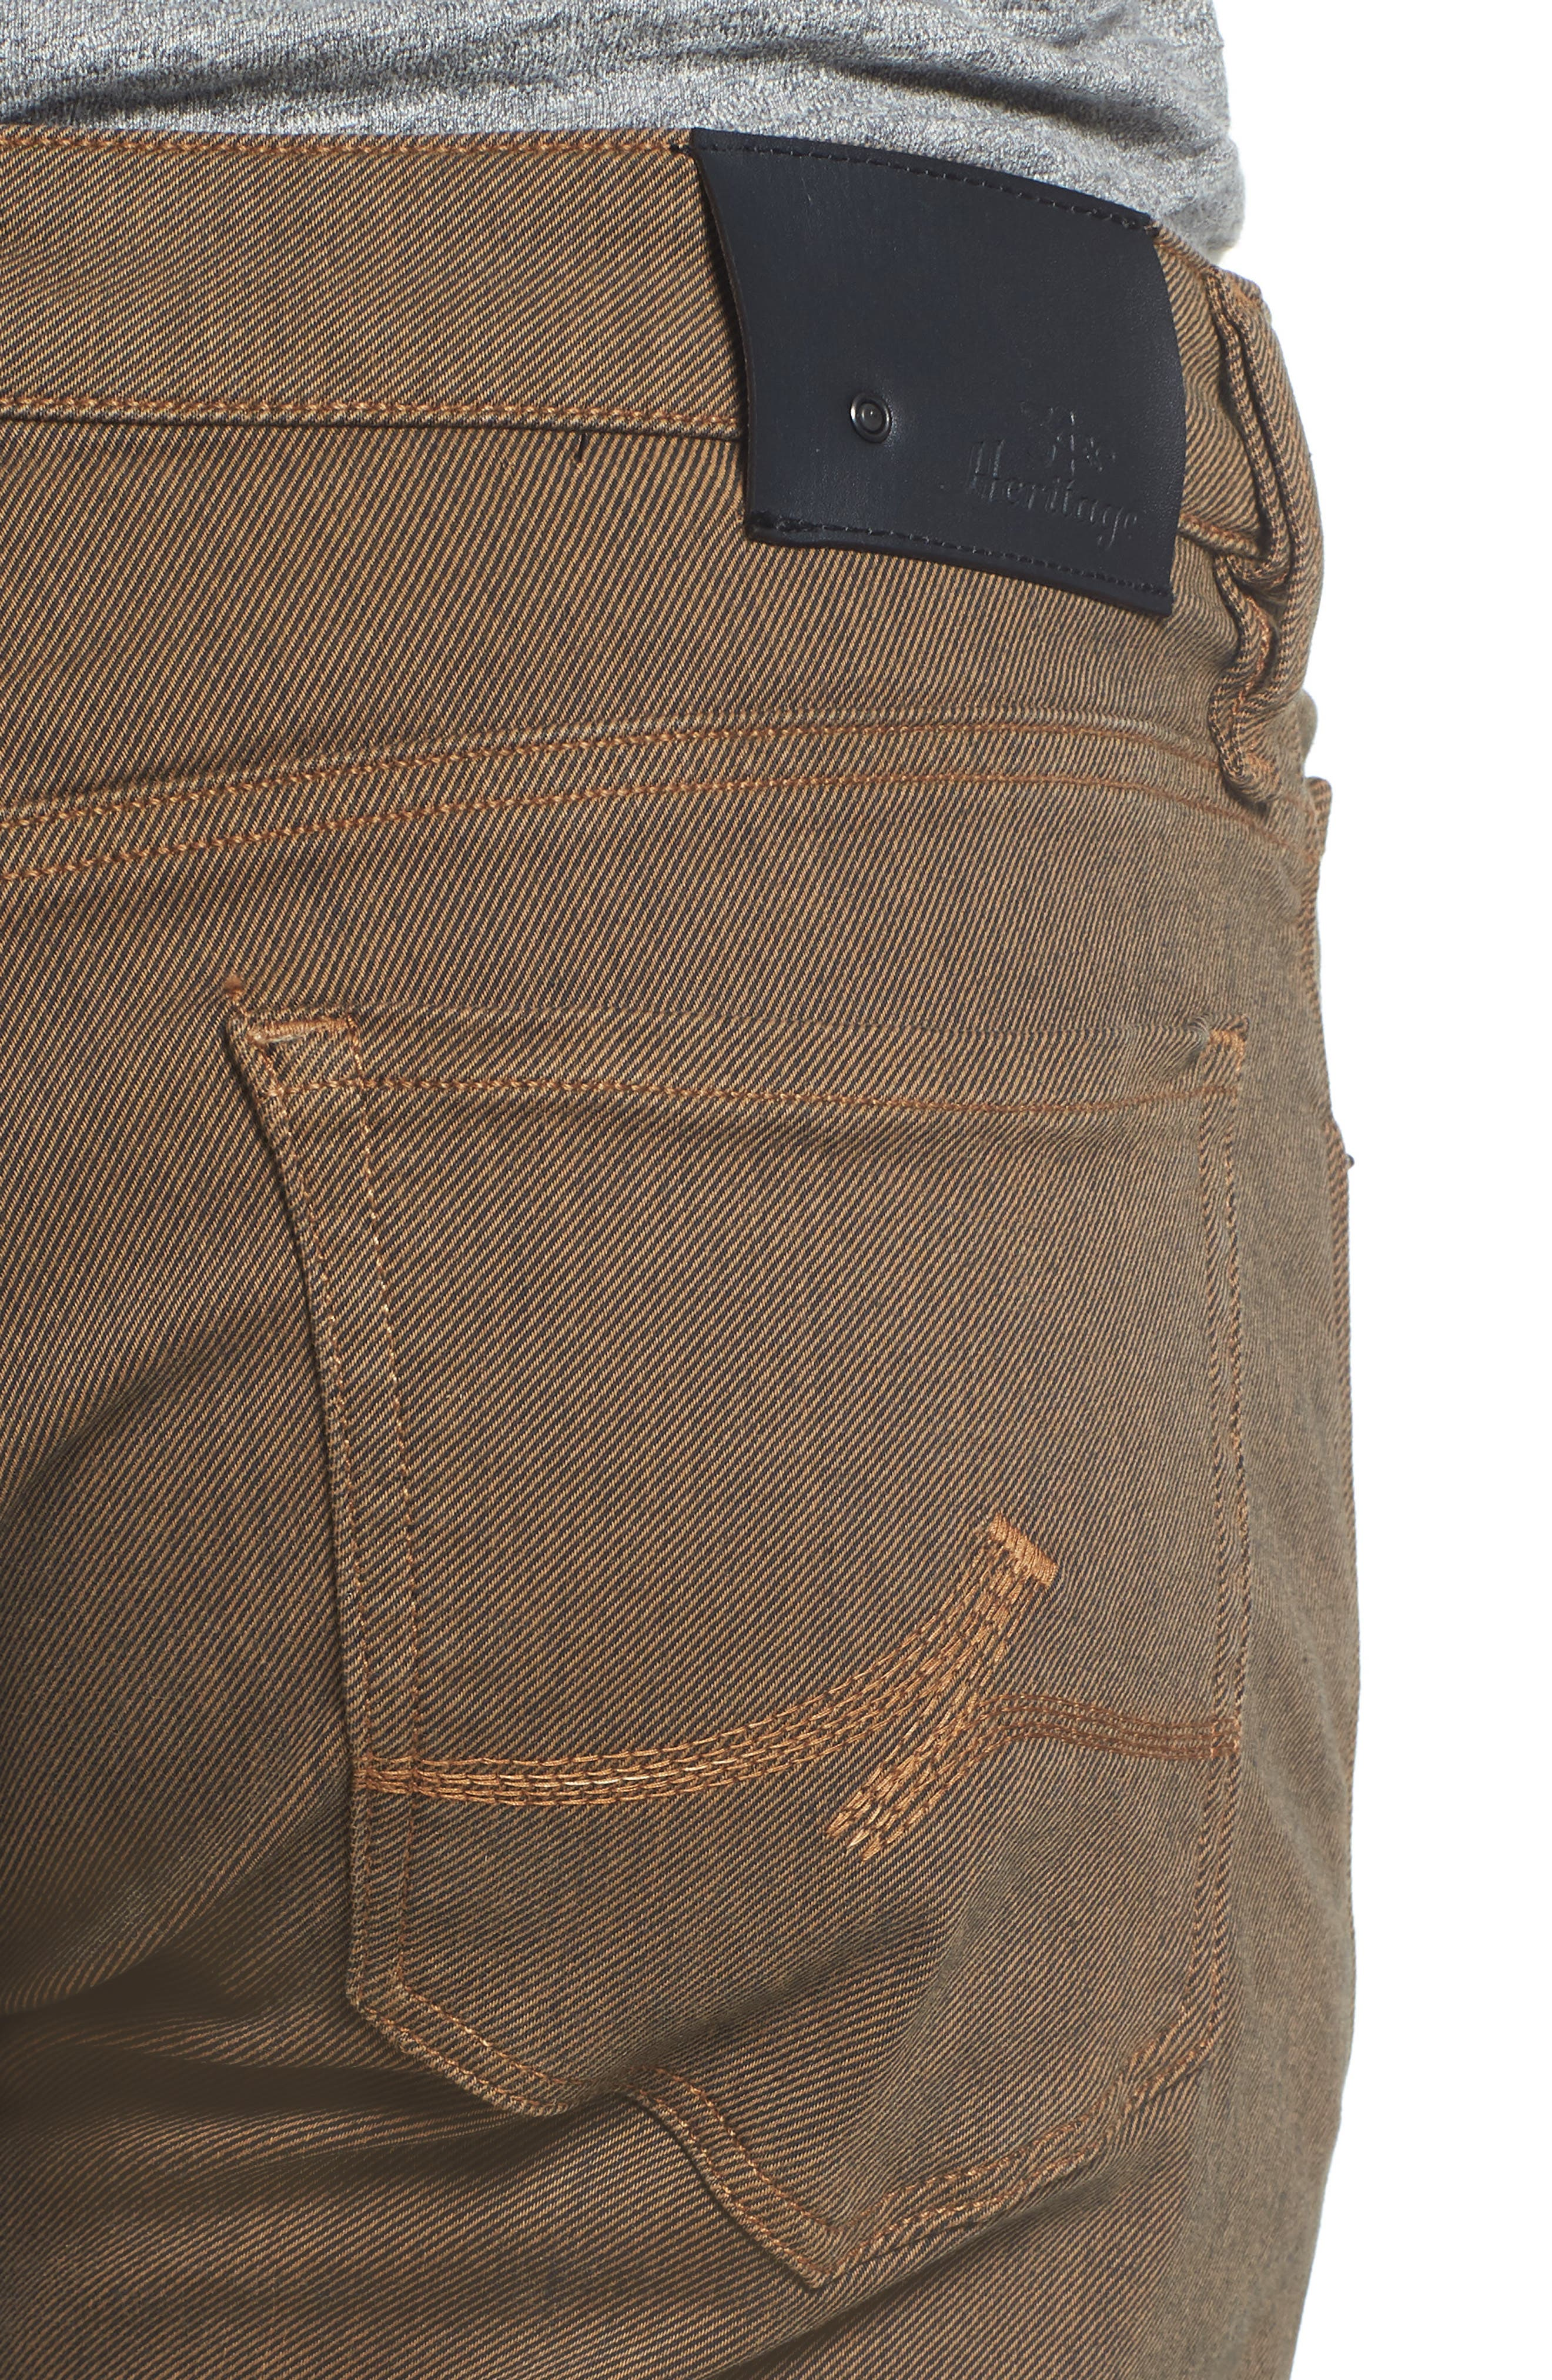 Heritage 34 Courage Straight Leg Jeans,                             Alternate thumbnail 4, color,                             200